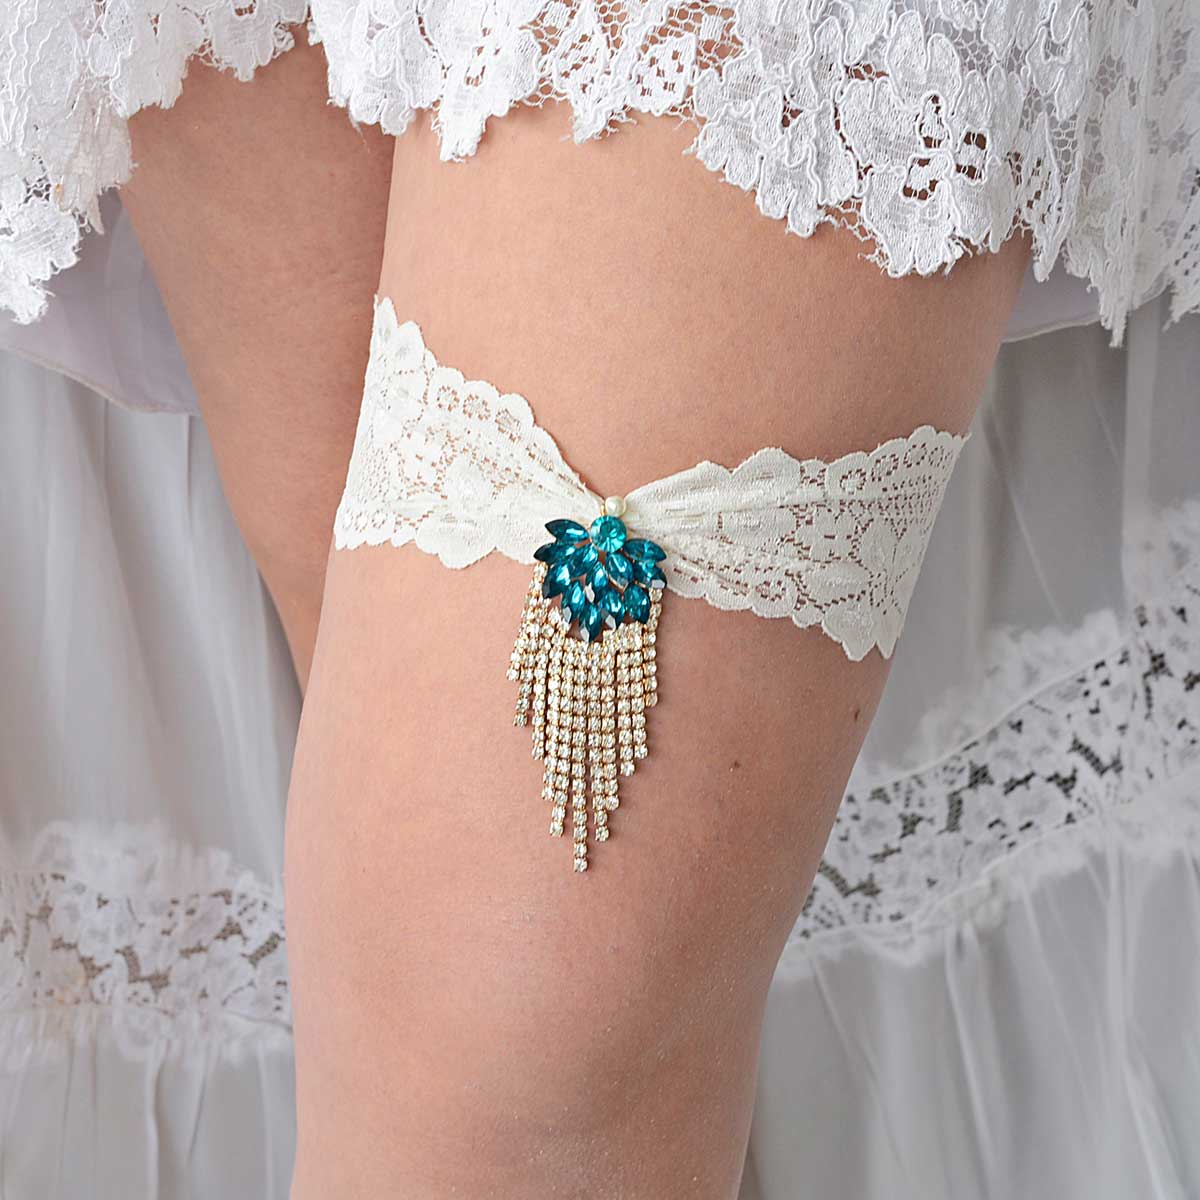 Teal Blue Rhinestone Set of Bridal Garters With Ivory Lace